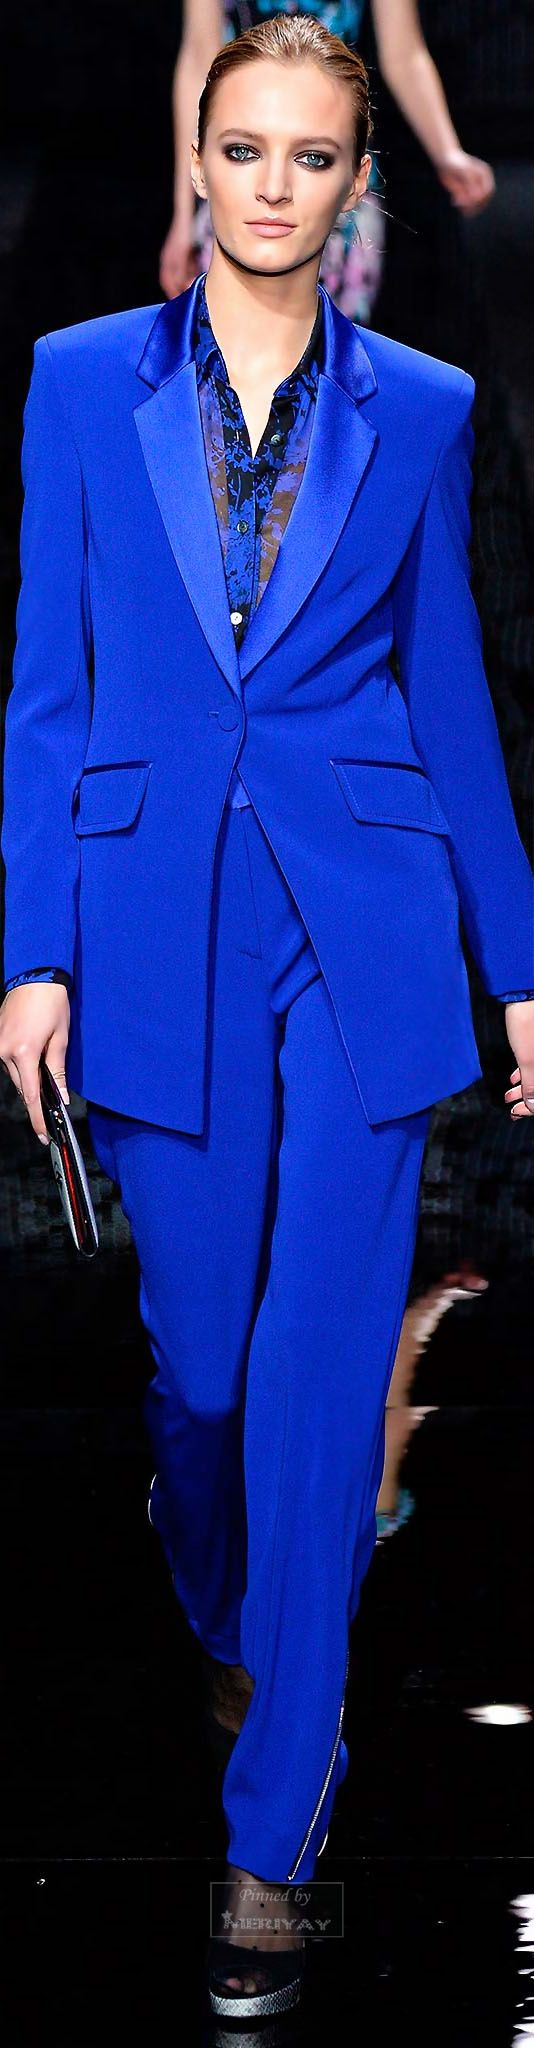 FALL 2015 DVF collection has this electric blue tailor set www.splashonline.eu